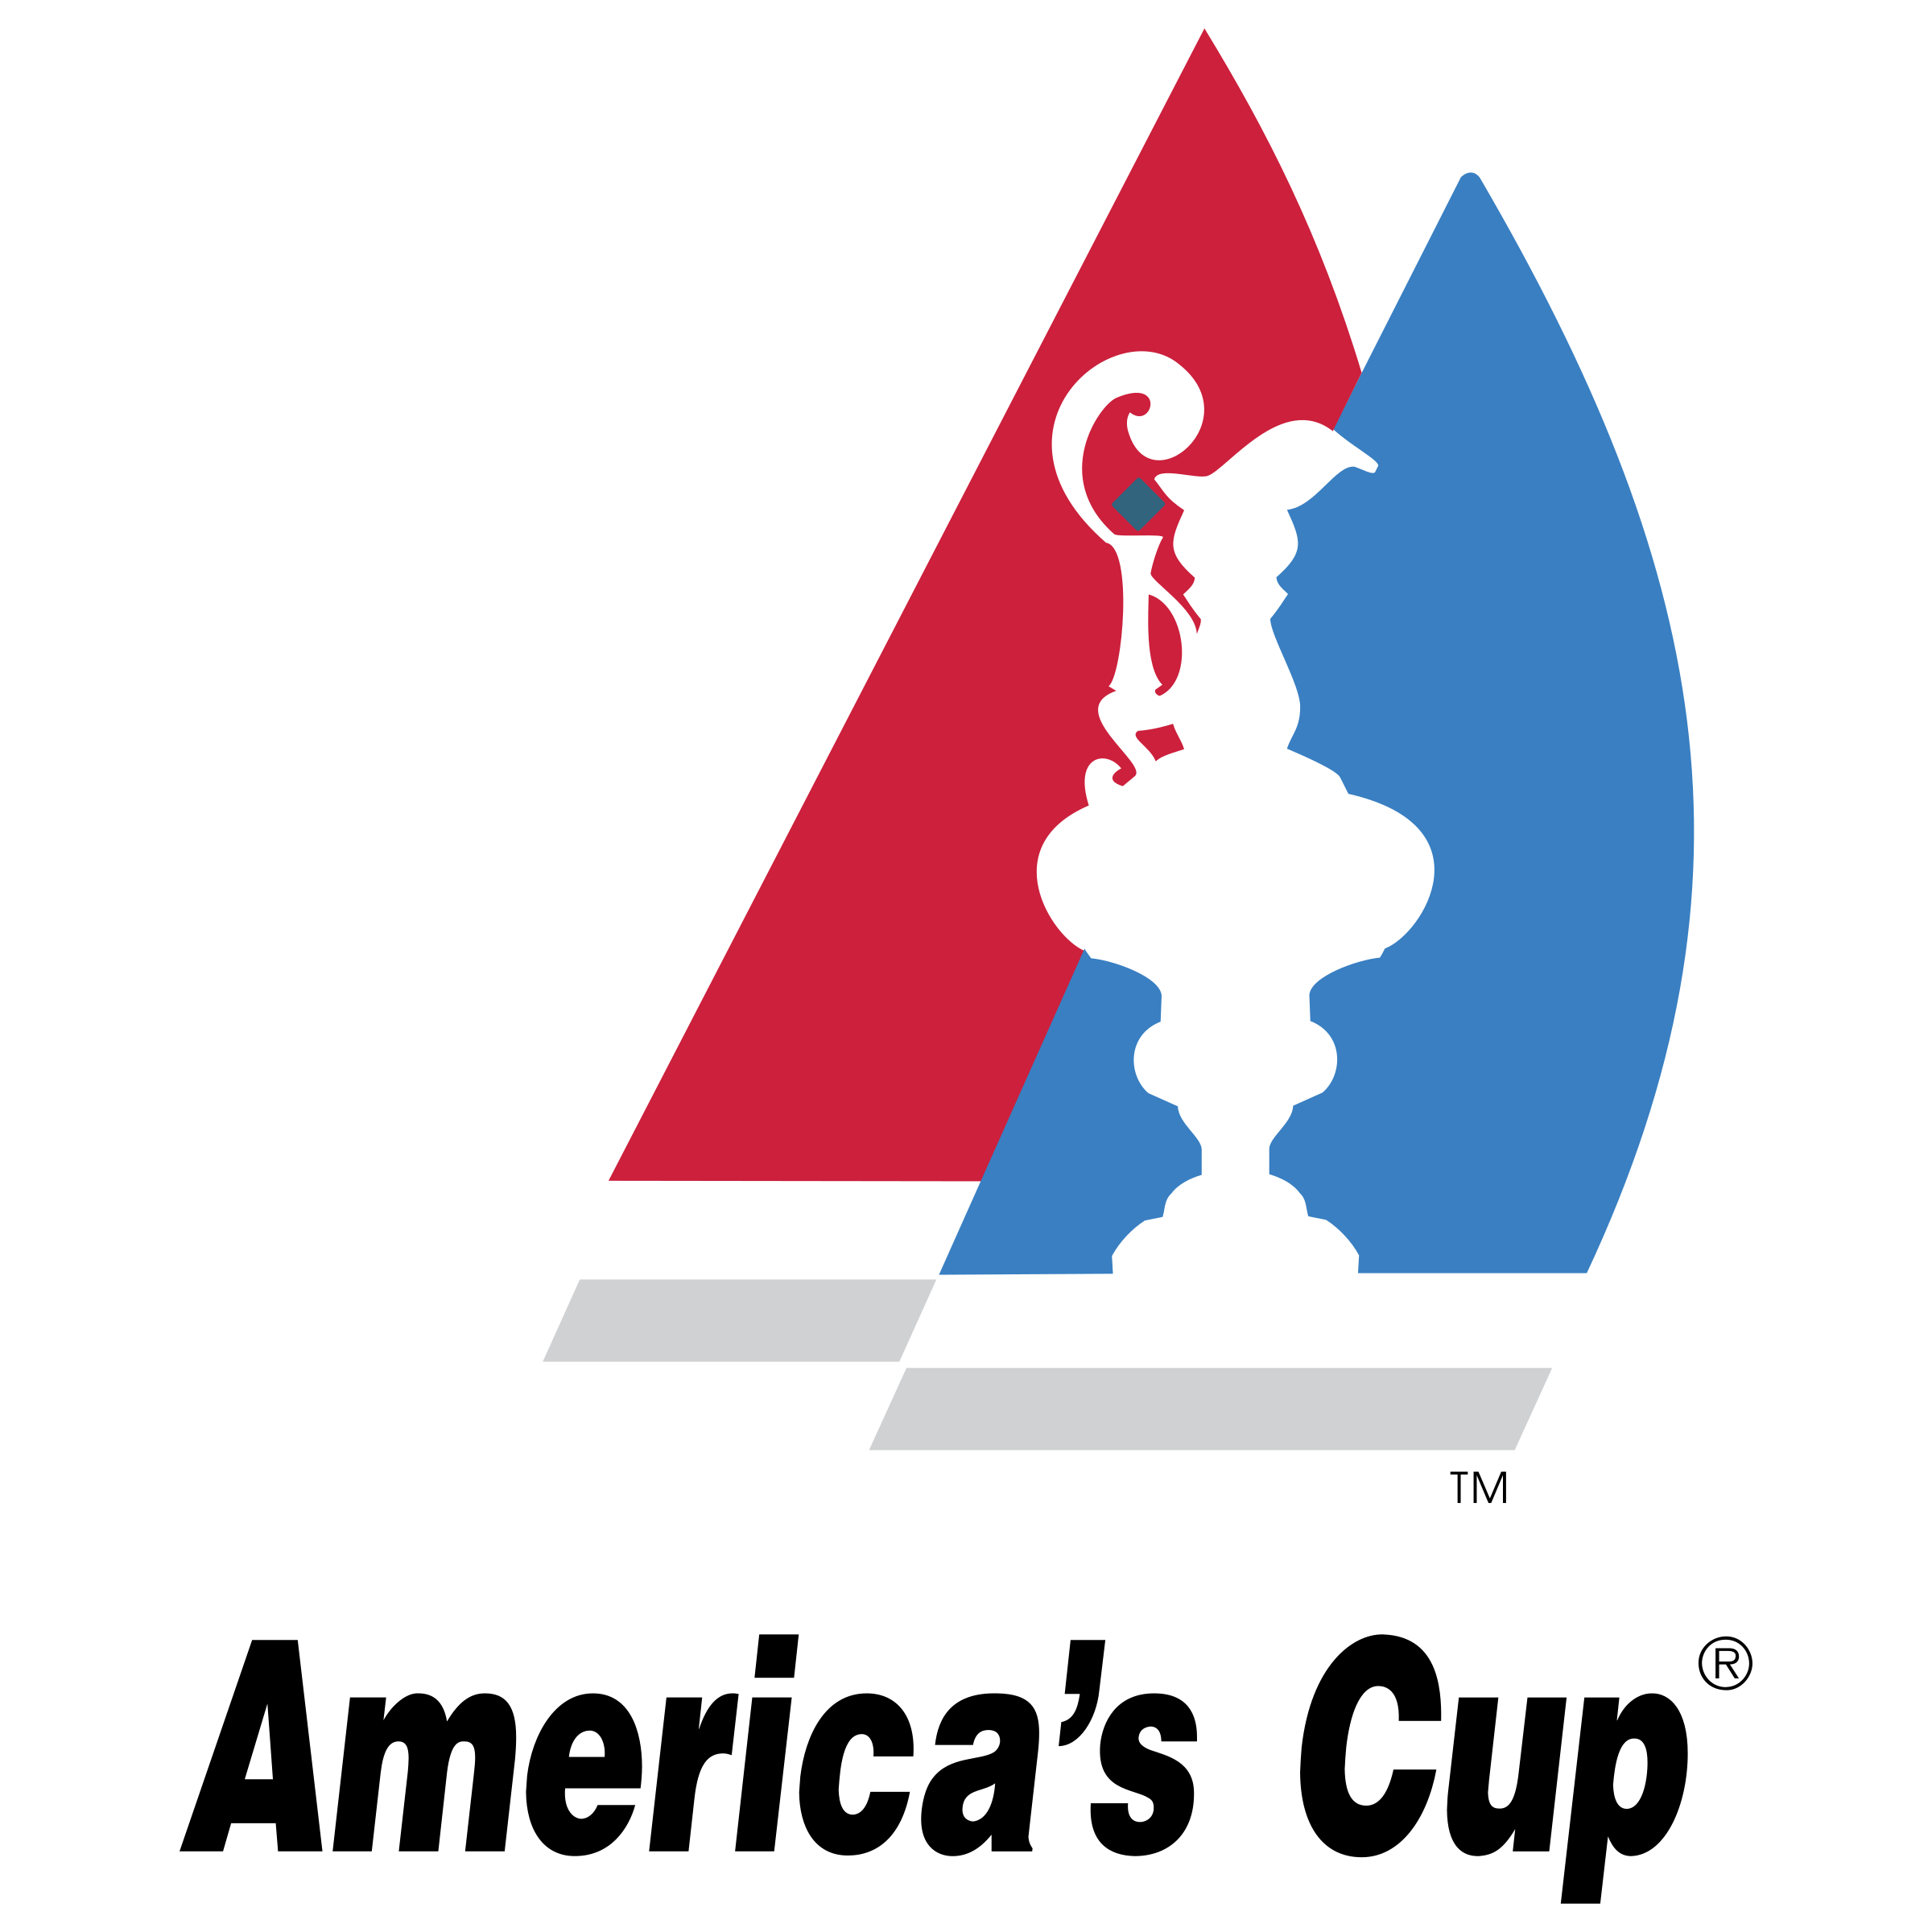 americas cup logo png transparent